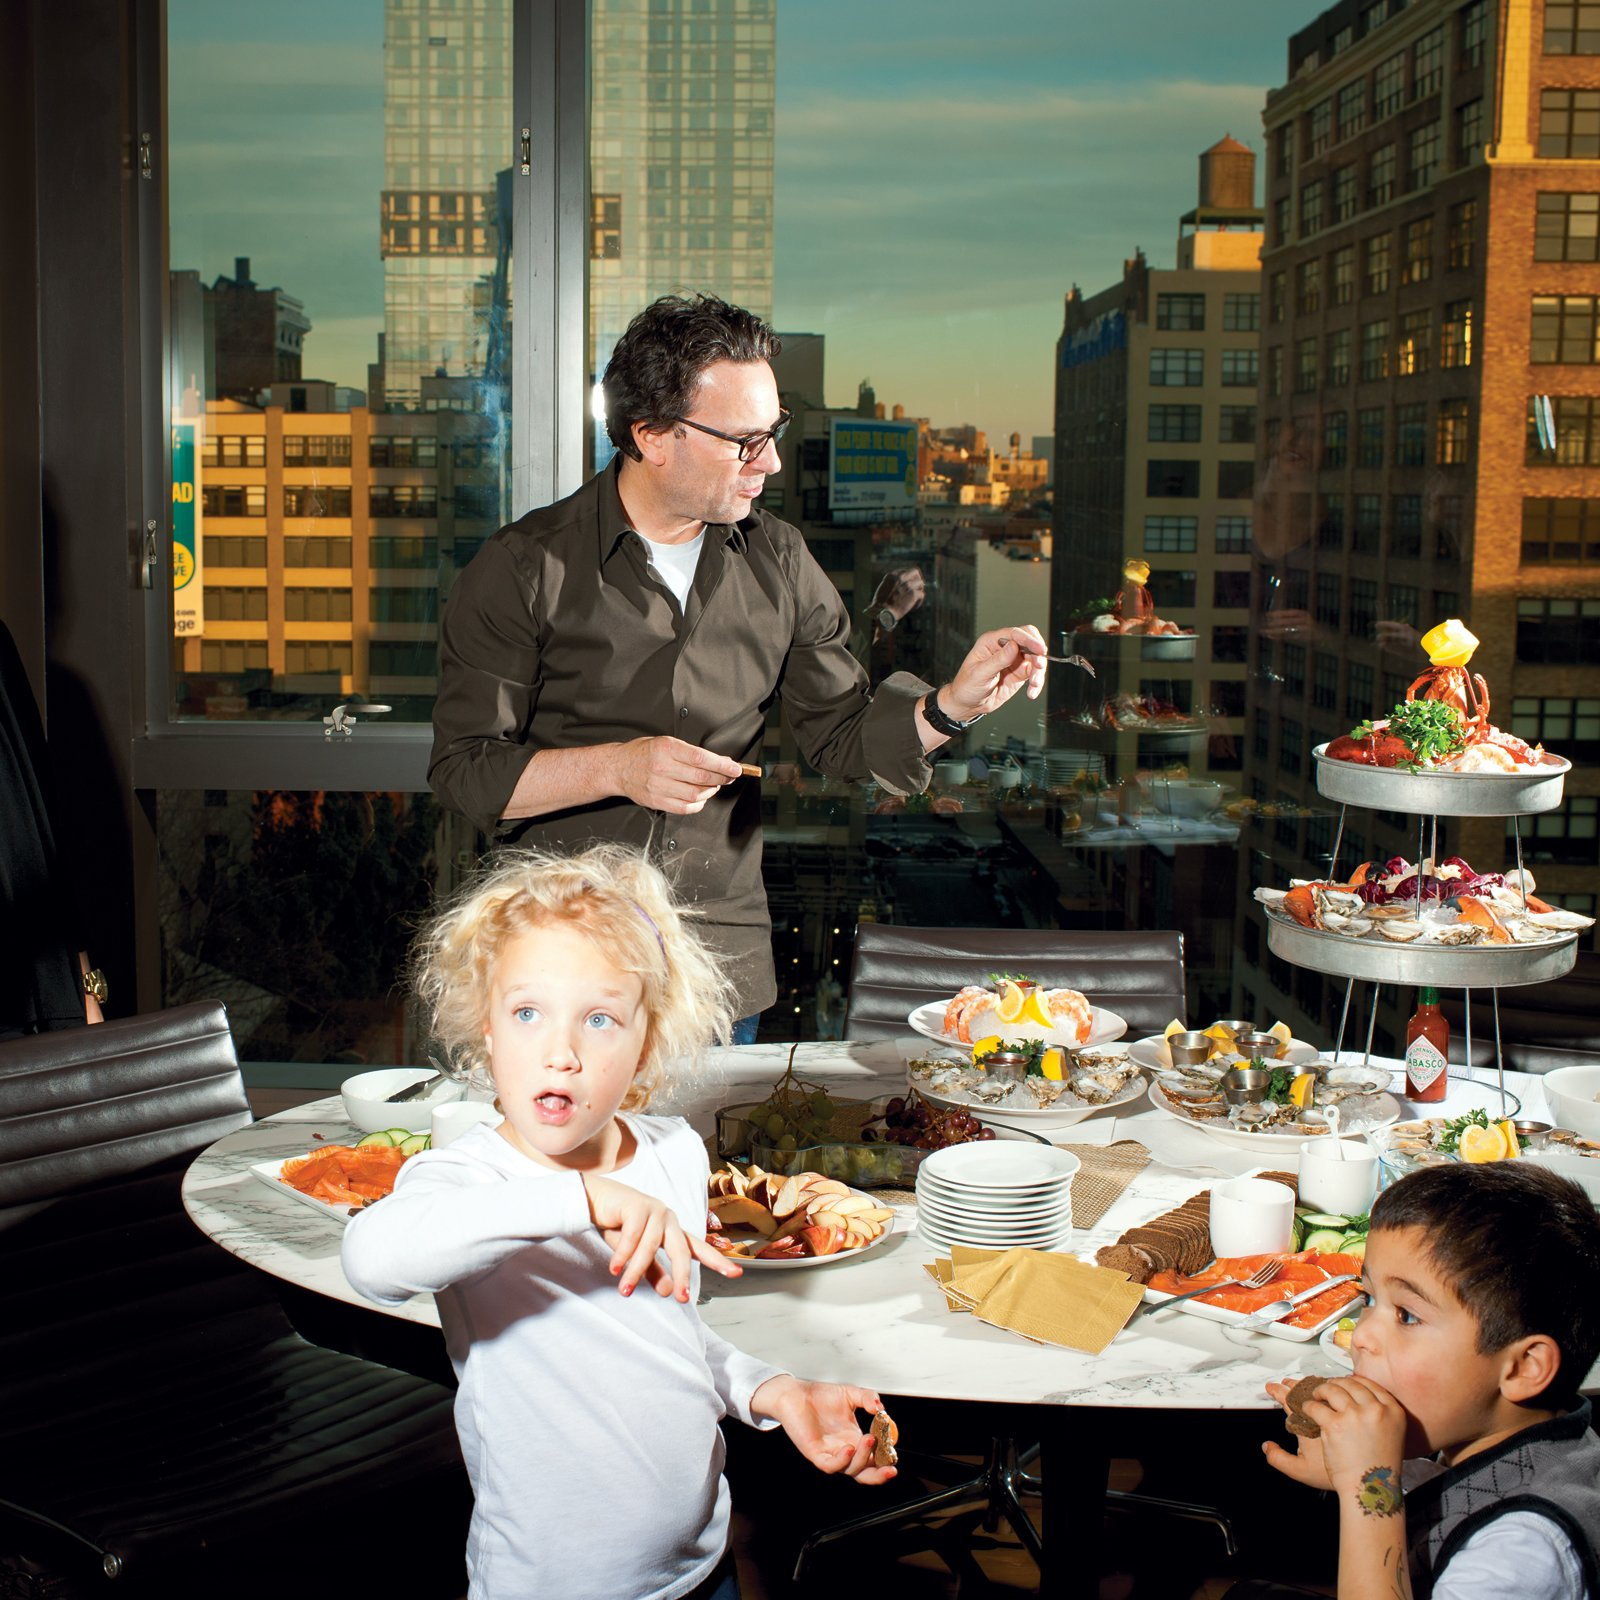 A tulip table is the perfect height for snacking on kid appropriate apple slices and crackers in architect Cass Calder Smith's New York high-rise. Photo by Brian Finke.  Photo 4 of 14 in High-Rise Living in Manhattan